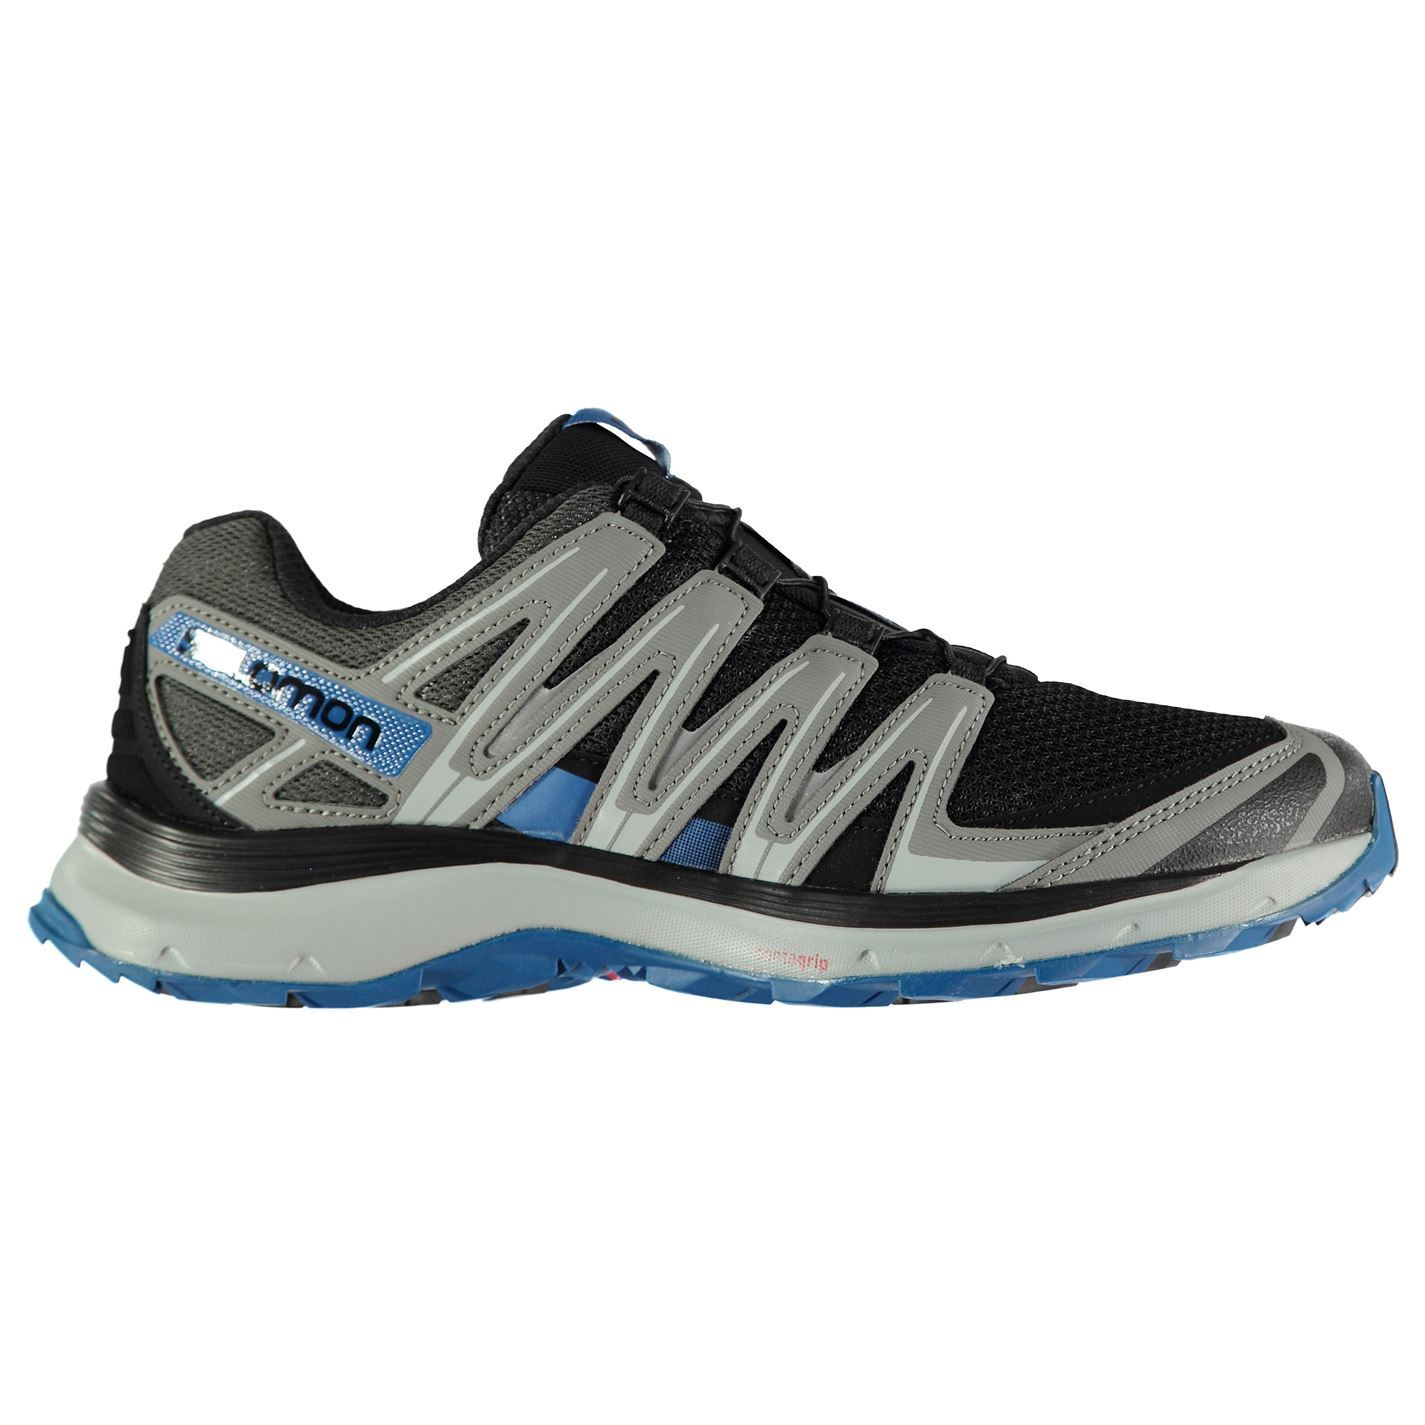 c32982c5fada1 Details about Salomon XA Lite Trail Running Shoes Mens Black Fitness  Jogging Trainers Sneakers